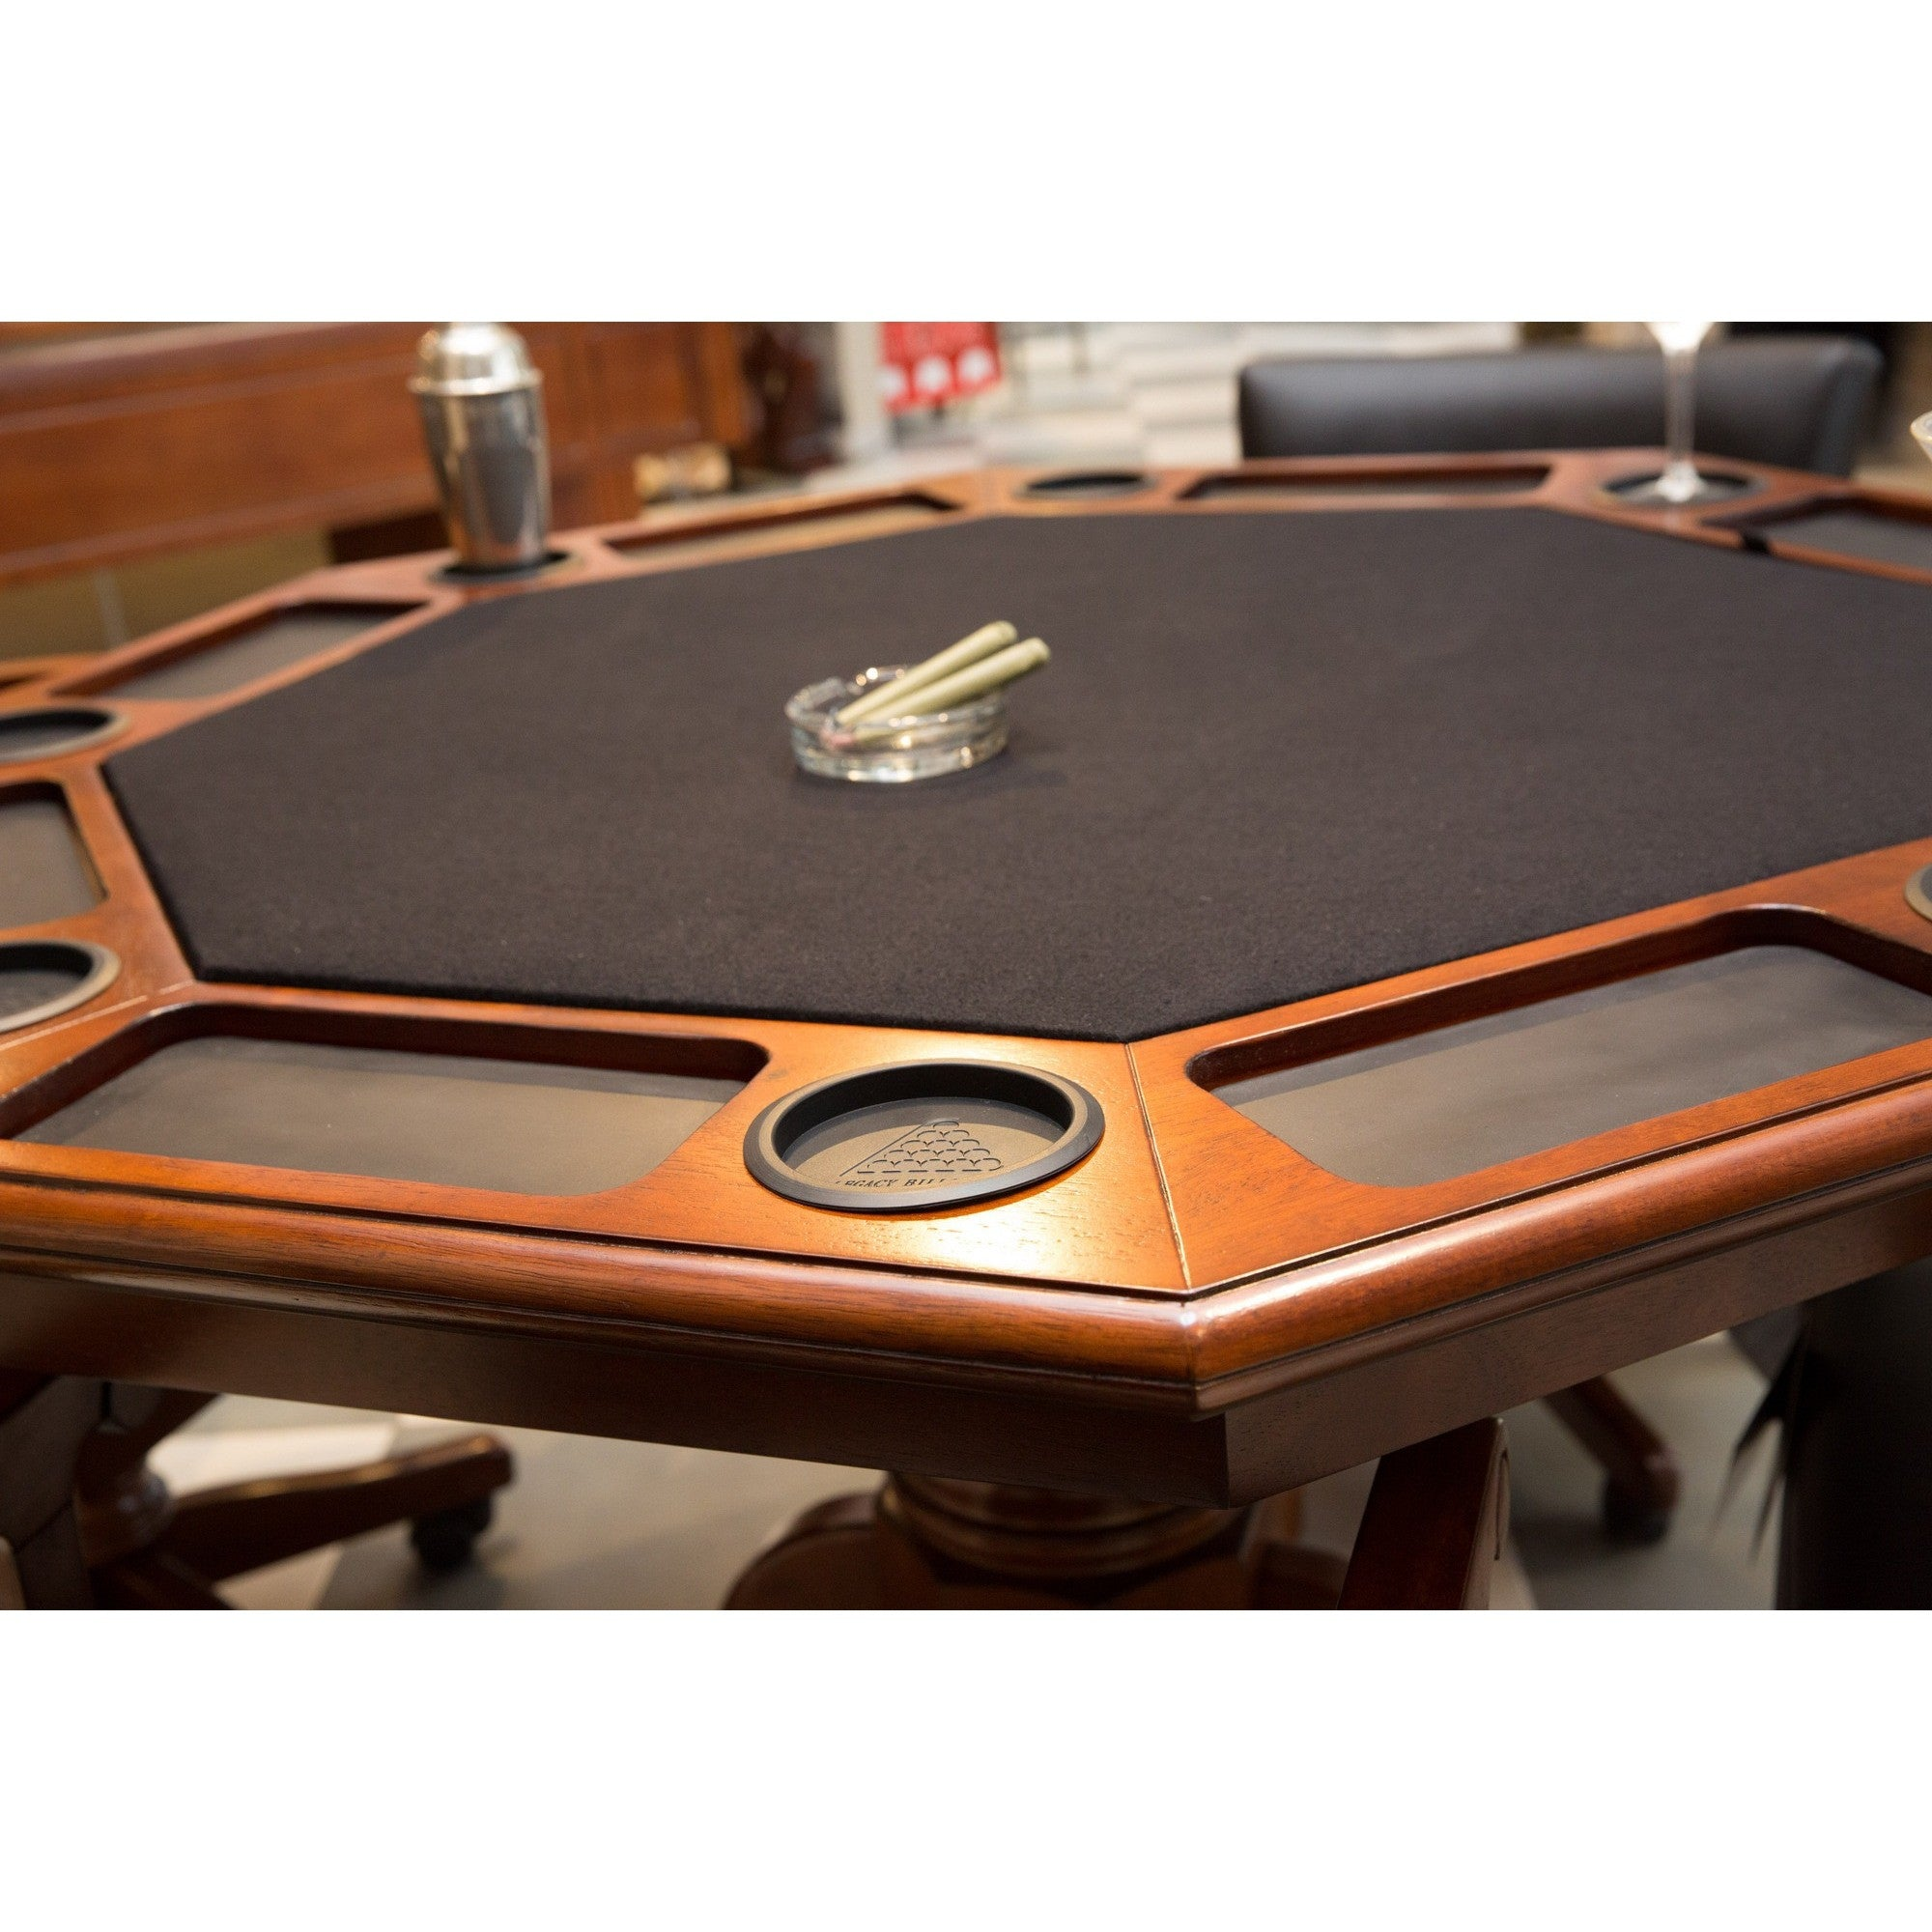 "Classic 2 in 1 48"" Octagon Game Table, Card Tables, Legacy - Danny Vegh's"